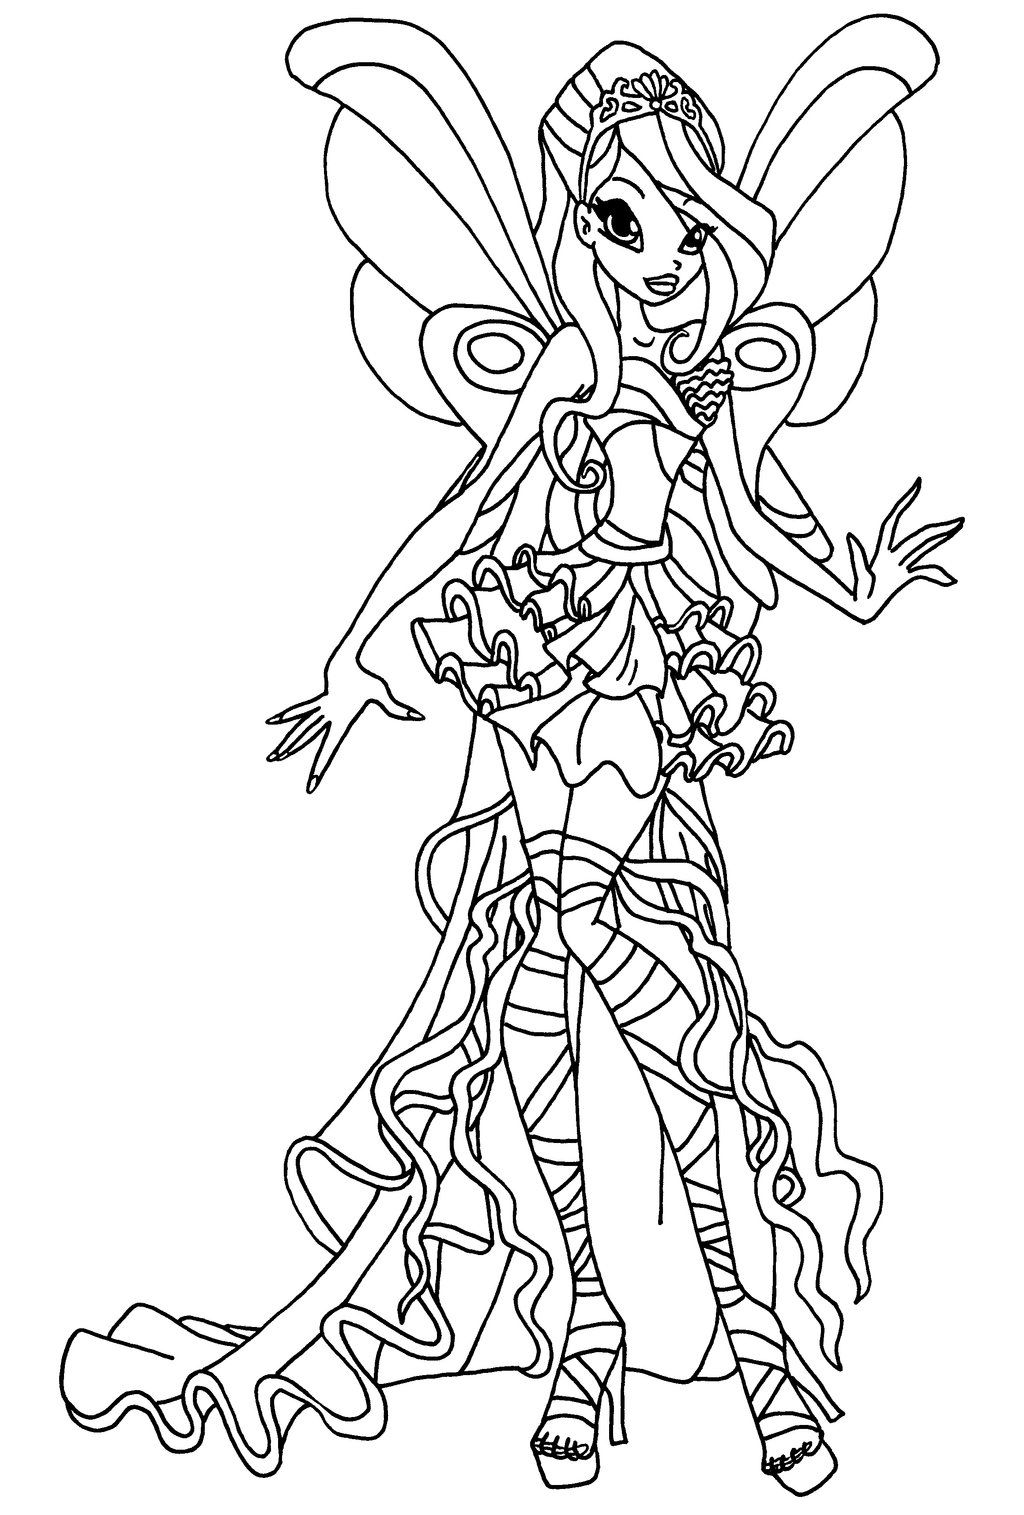 Winx club coloring pages - Google Search | Coloring: People | Pinterest